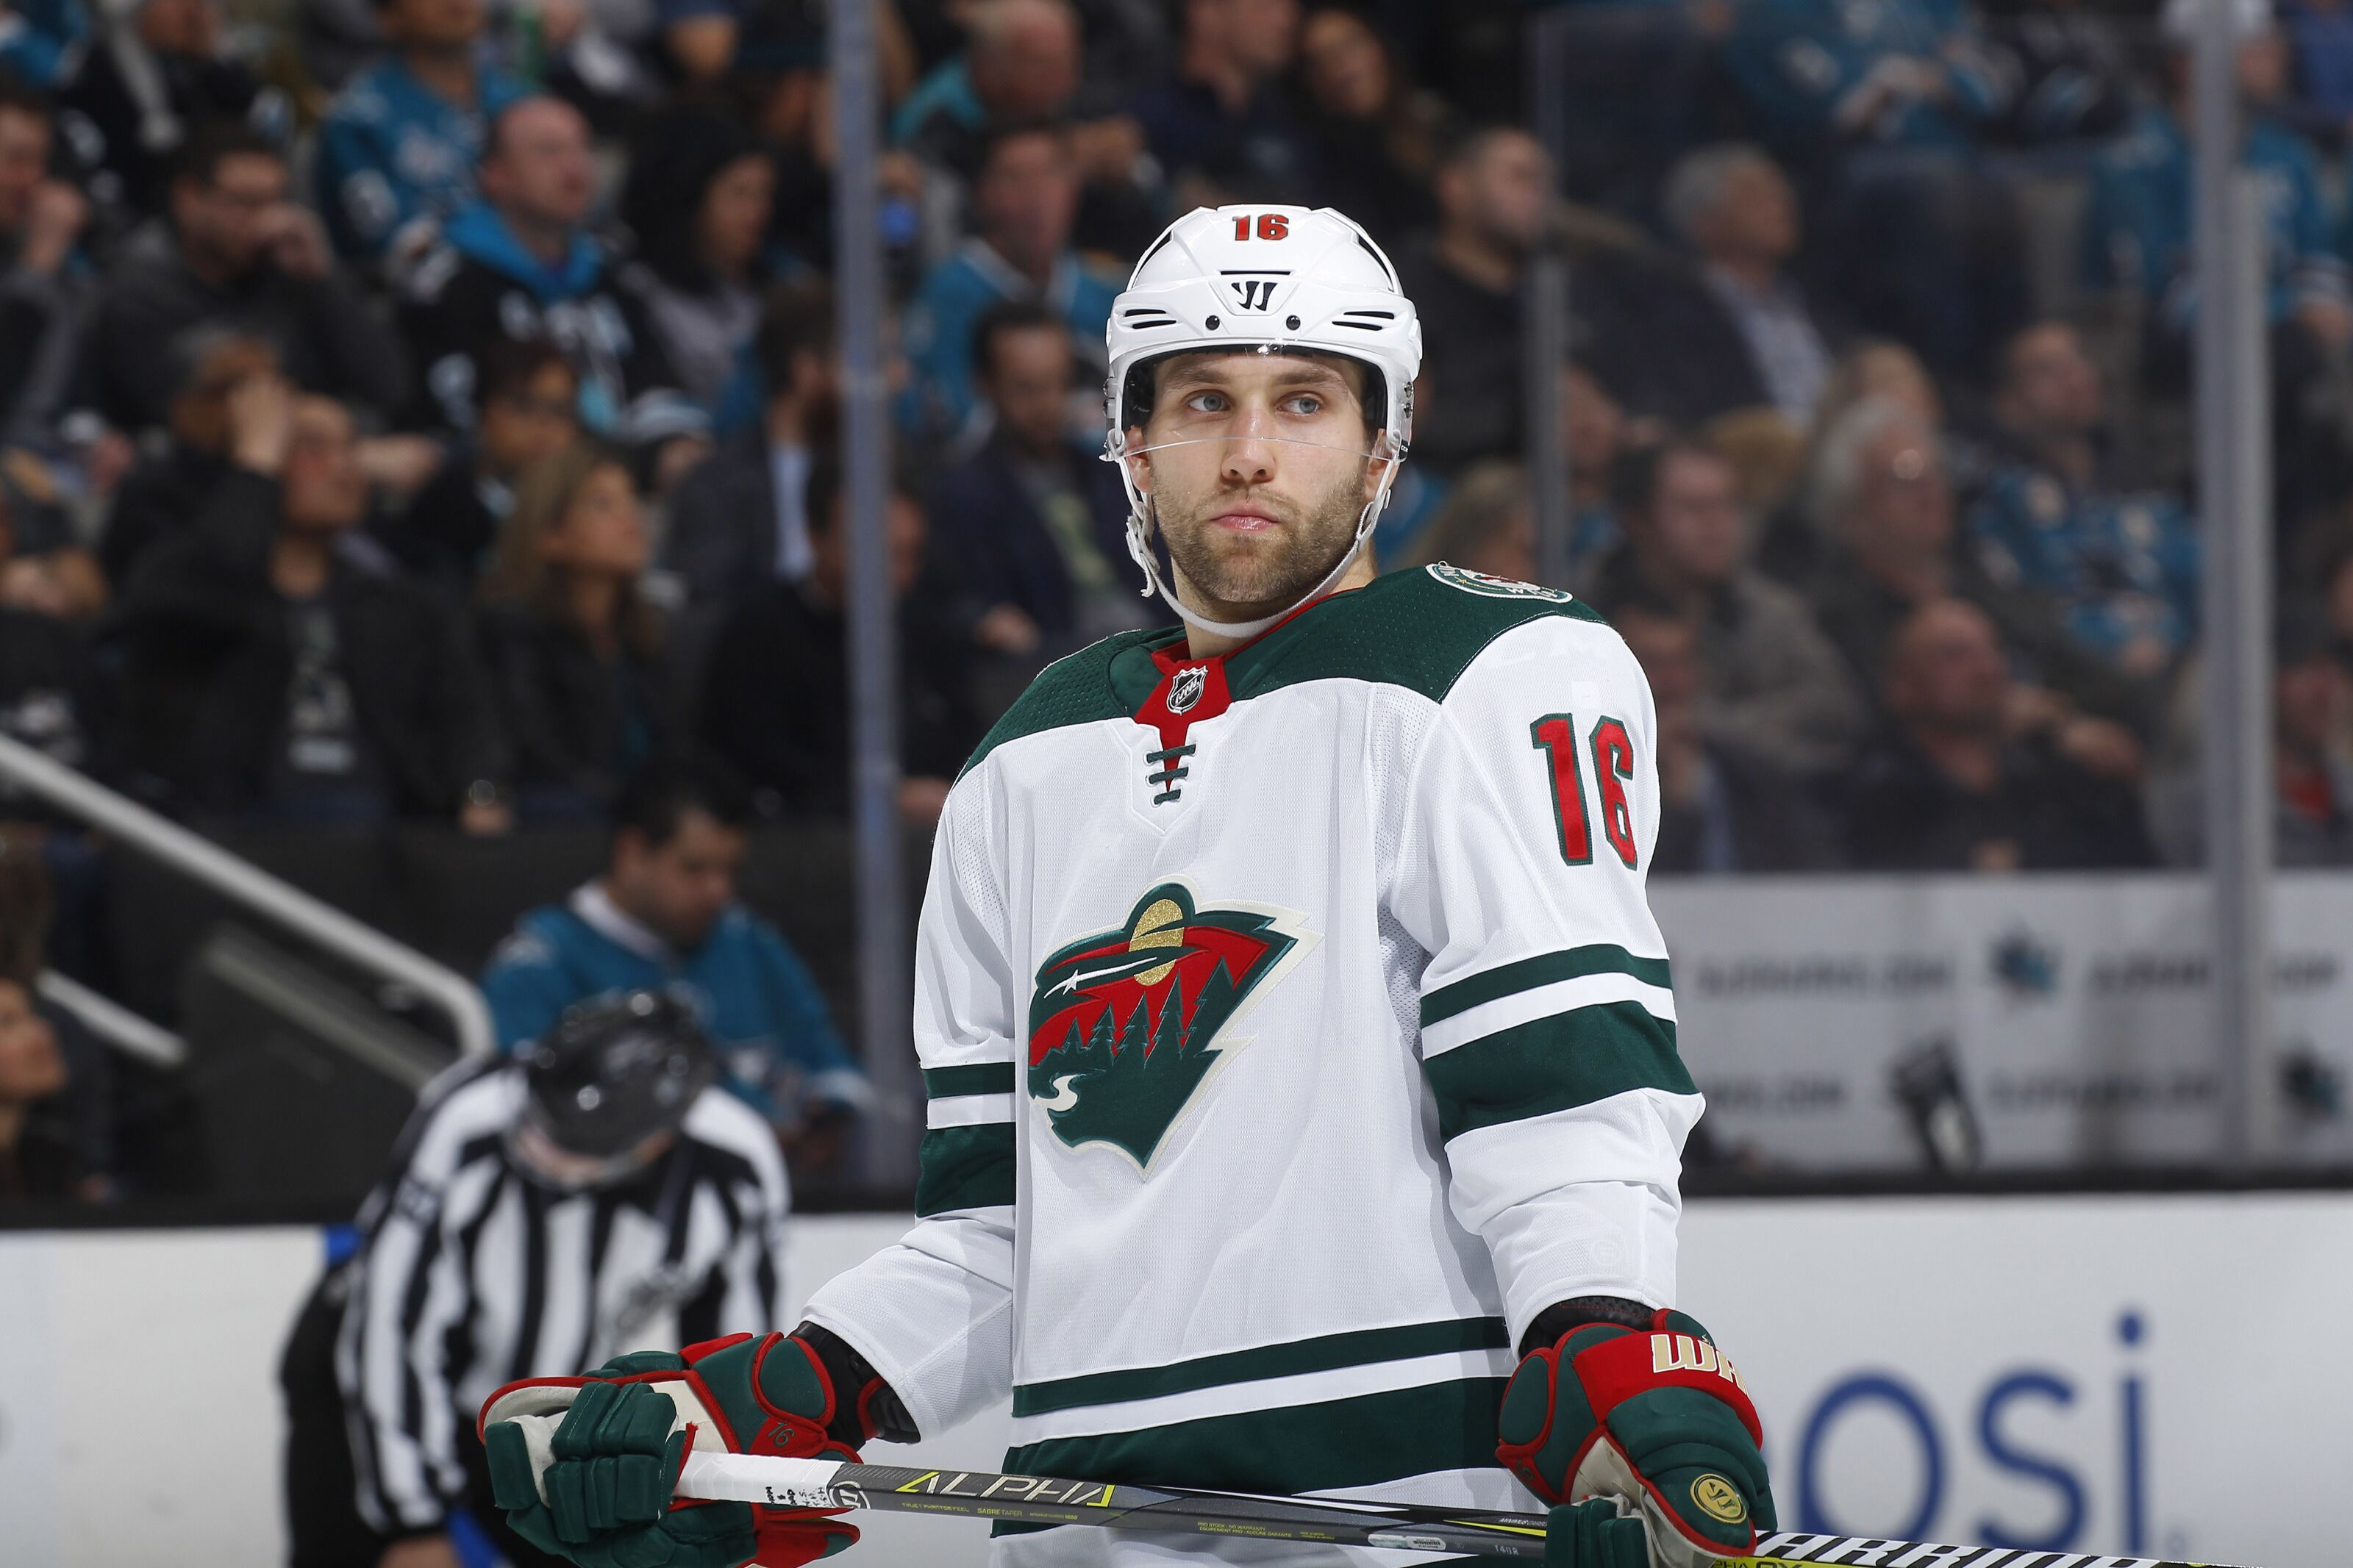 Minnesota Wild Reward Jason Zucker With New Deal After Record Year